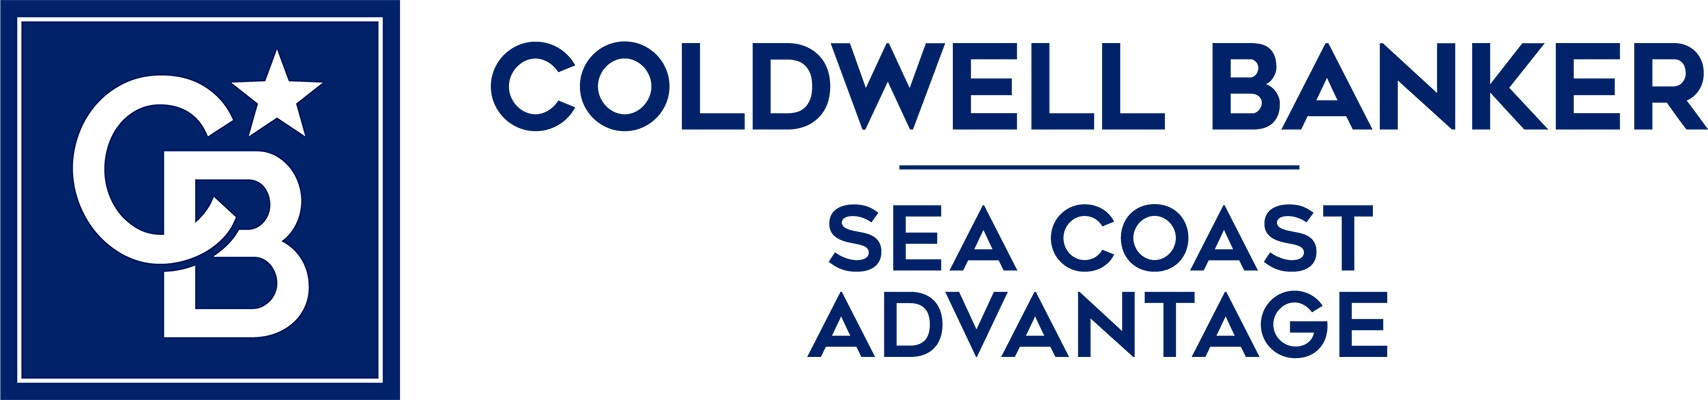 Weldon Harris - Coldwell Banker Sea Coast Advantage Realty